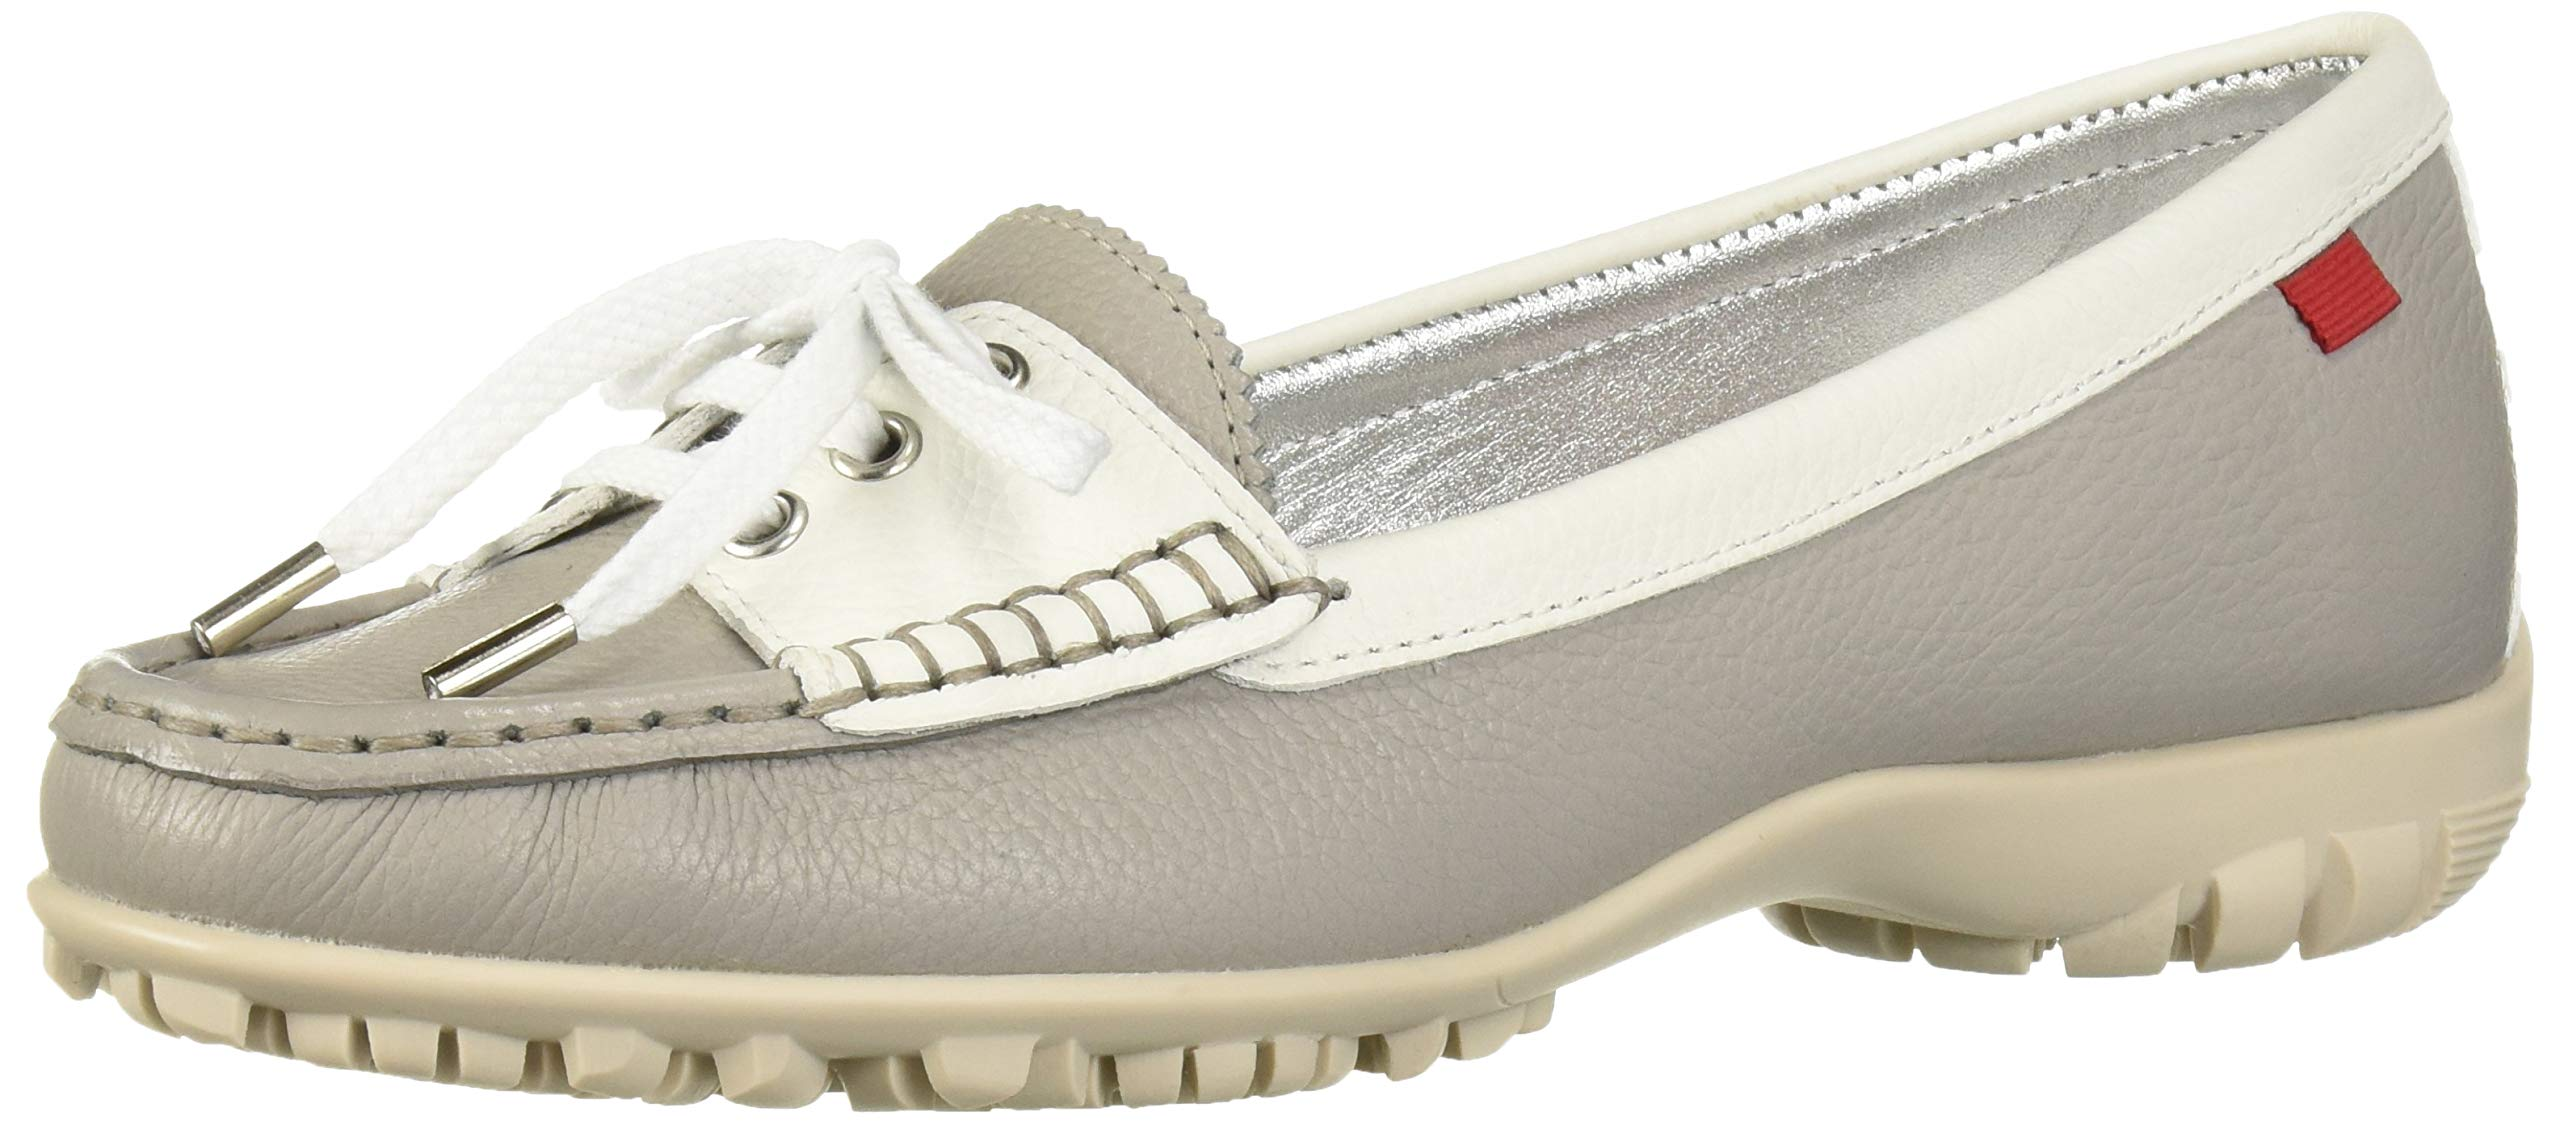 MARC JOSEPH NEW YORK Womens Leather Made in Brazil Liberty Golf Shoe, ash Grainy, 6 M US by MARC JOSEPH NEW YORK